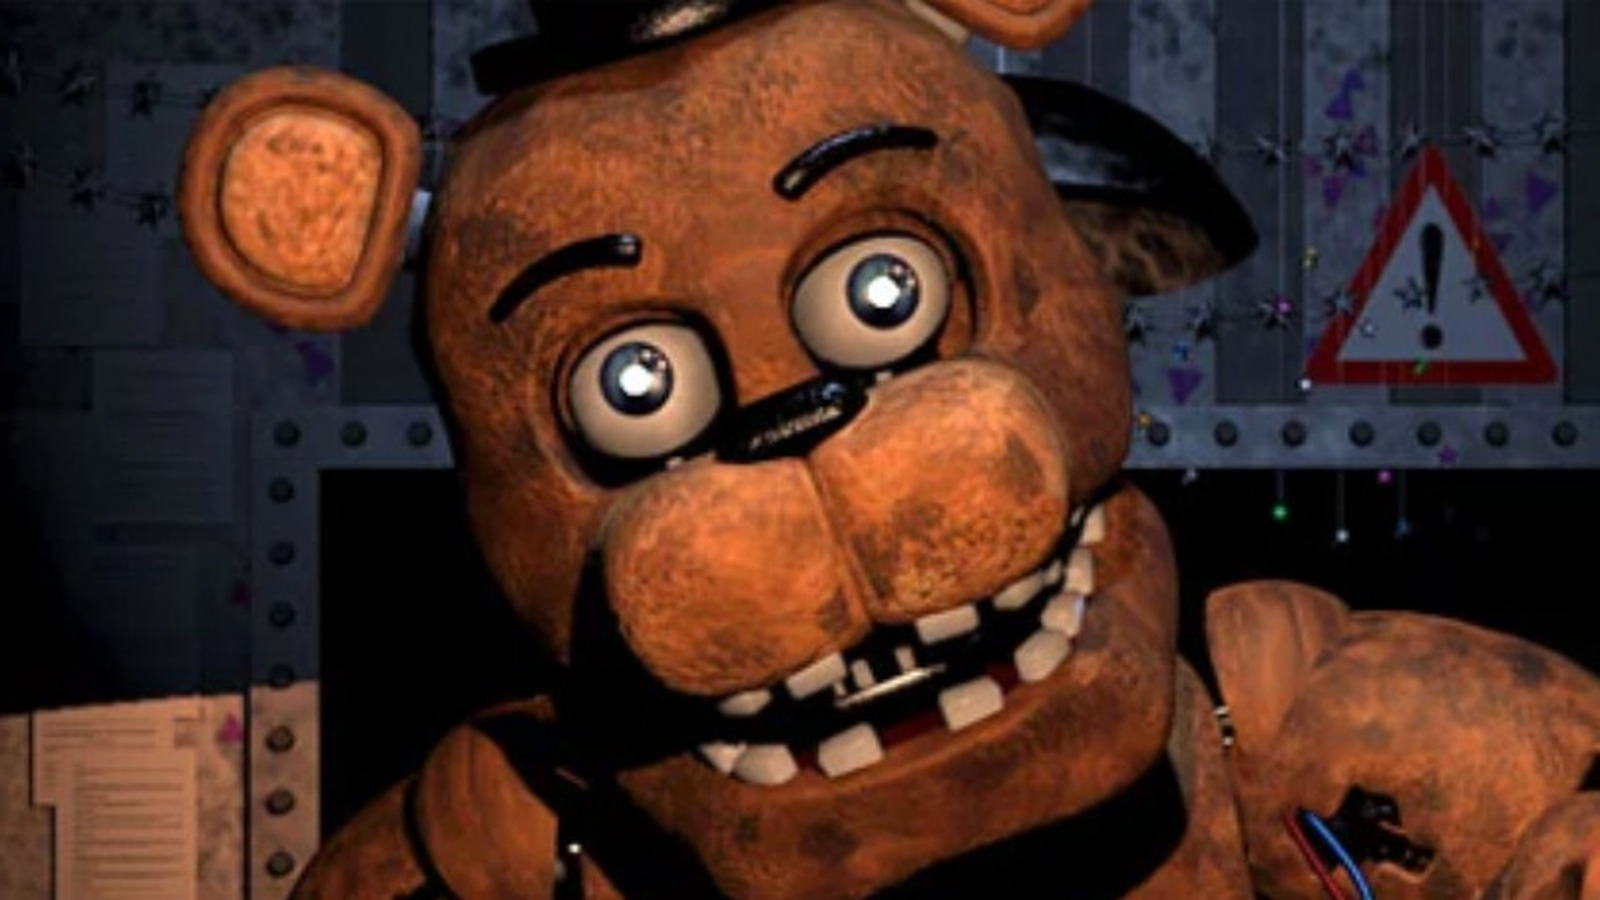 The Five Nights At Freddy's / Horror Games